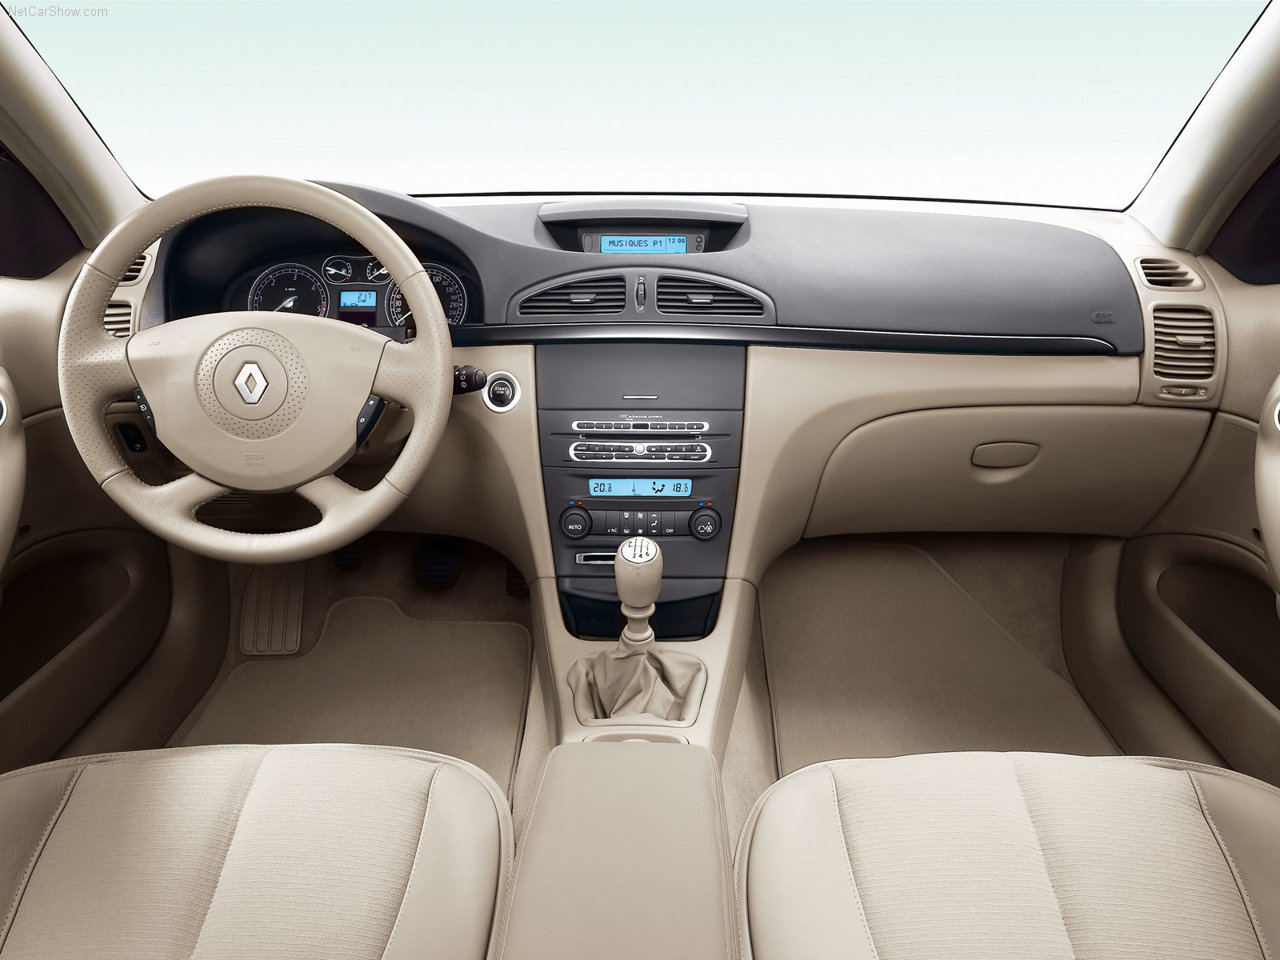 renault laguna 2002 interior wallpaper 1280x960 22811